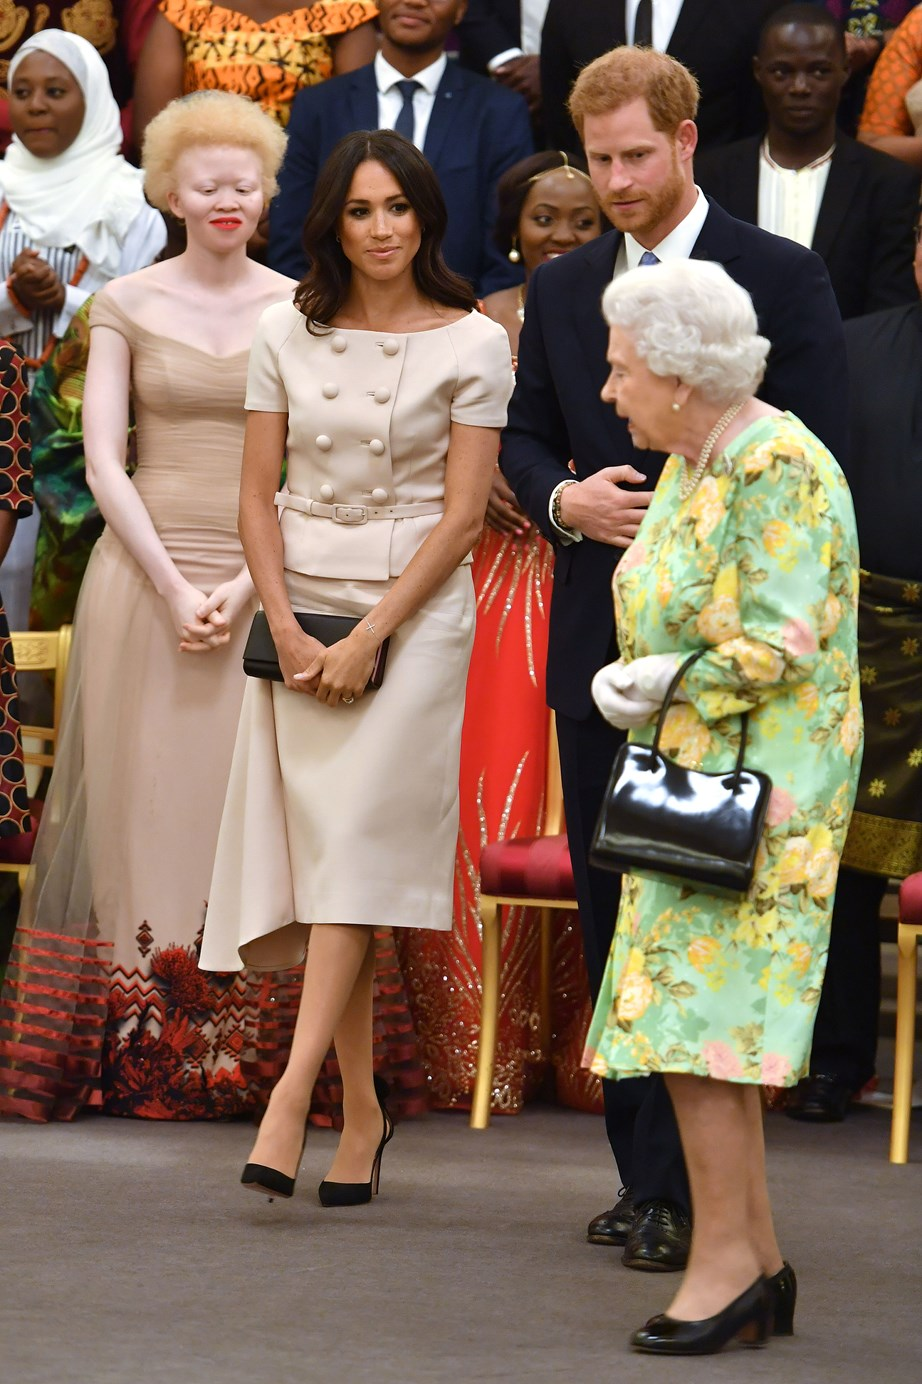 "Powder pink in Prada! Meghan Markle looks as royal as she does sophisticated in this cinched-at-the-waist, buttoned dress at [the Queen's Young Leaders Awards](https://www.nowtolove.com.au/royals/british-royal-family/meghan-markle-queen-elizabeth-queens-young-leaders-awards-ceremony-49458|target=""_blank"") reception at Buckingham Palace. While Meghan looks polished-to-Prada-perfection, we are quietly missing Meghan's ever-so-gently bohemian royal style that she sported pre-wedding. Just saying."